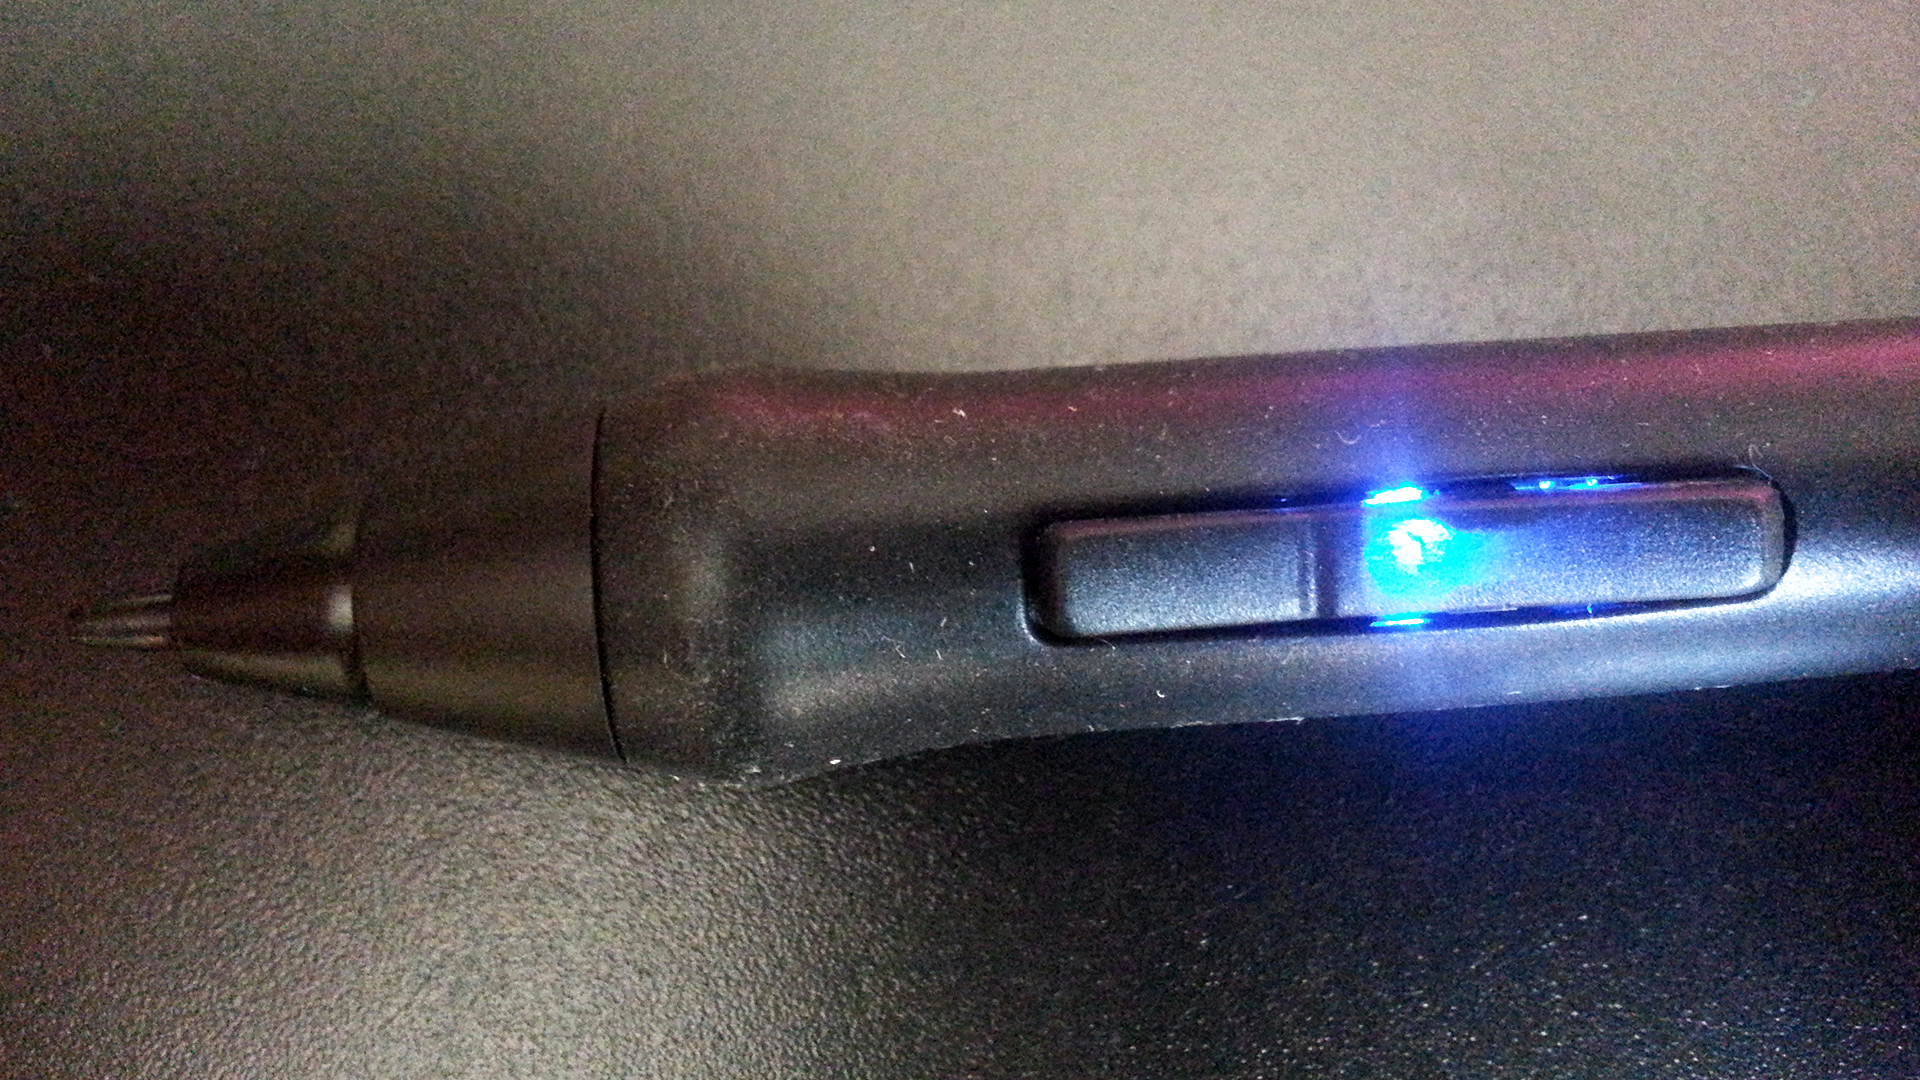 xp pen 22 hd stylus